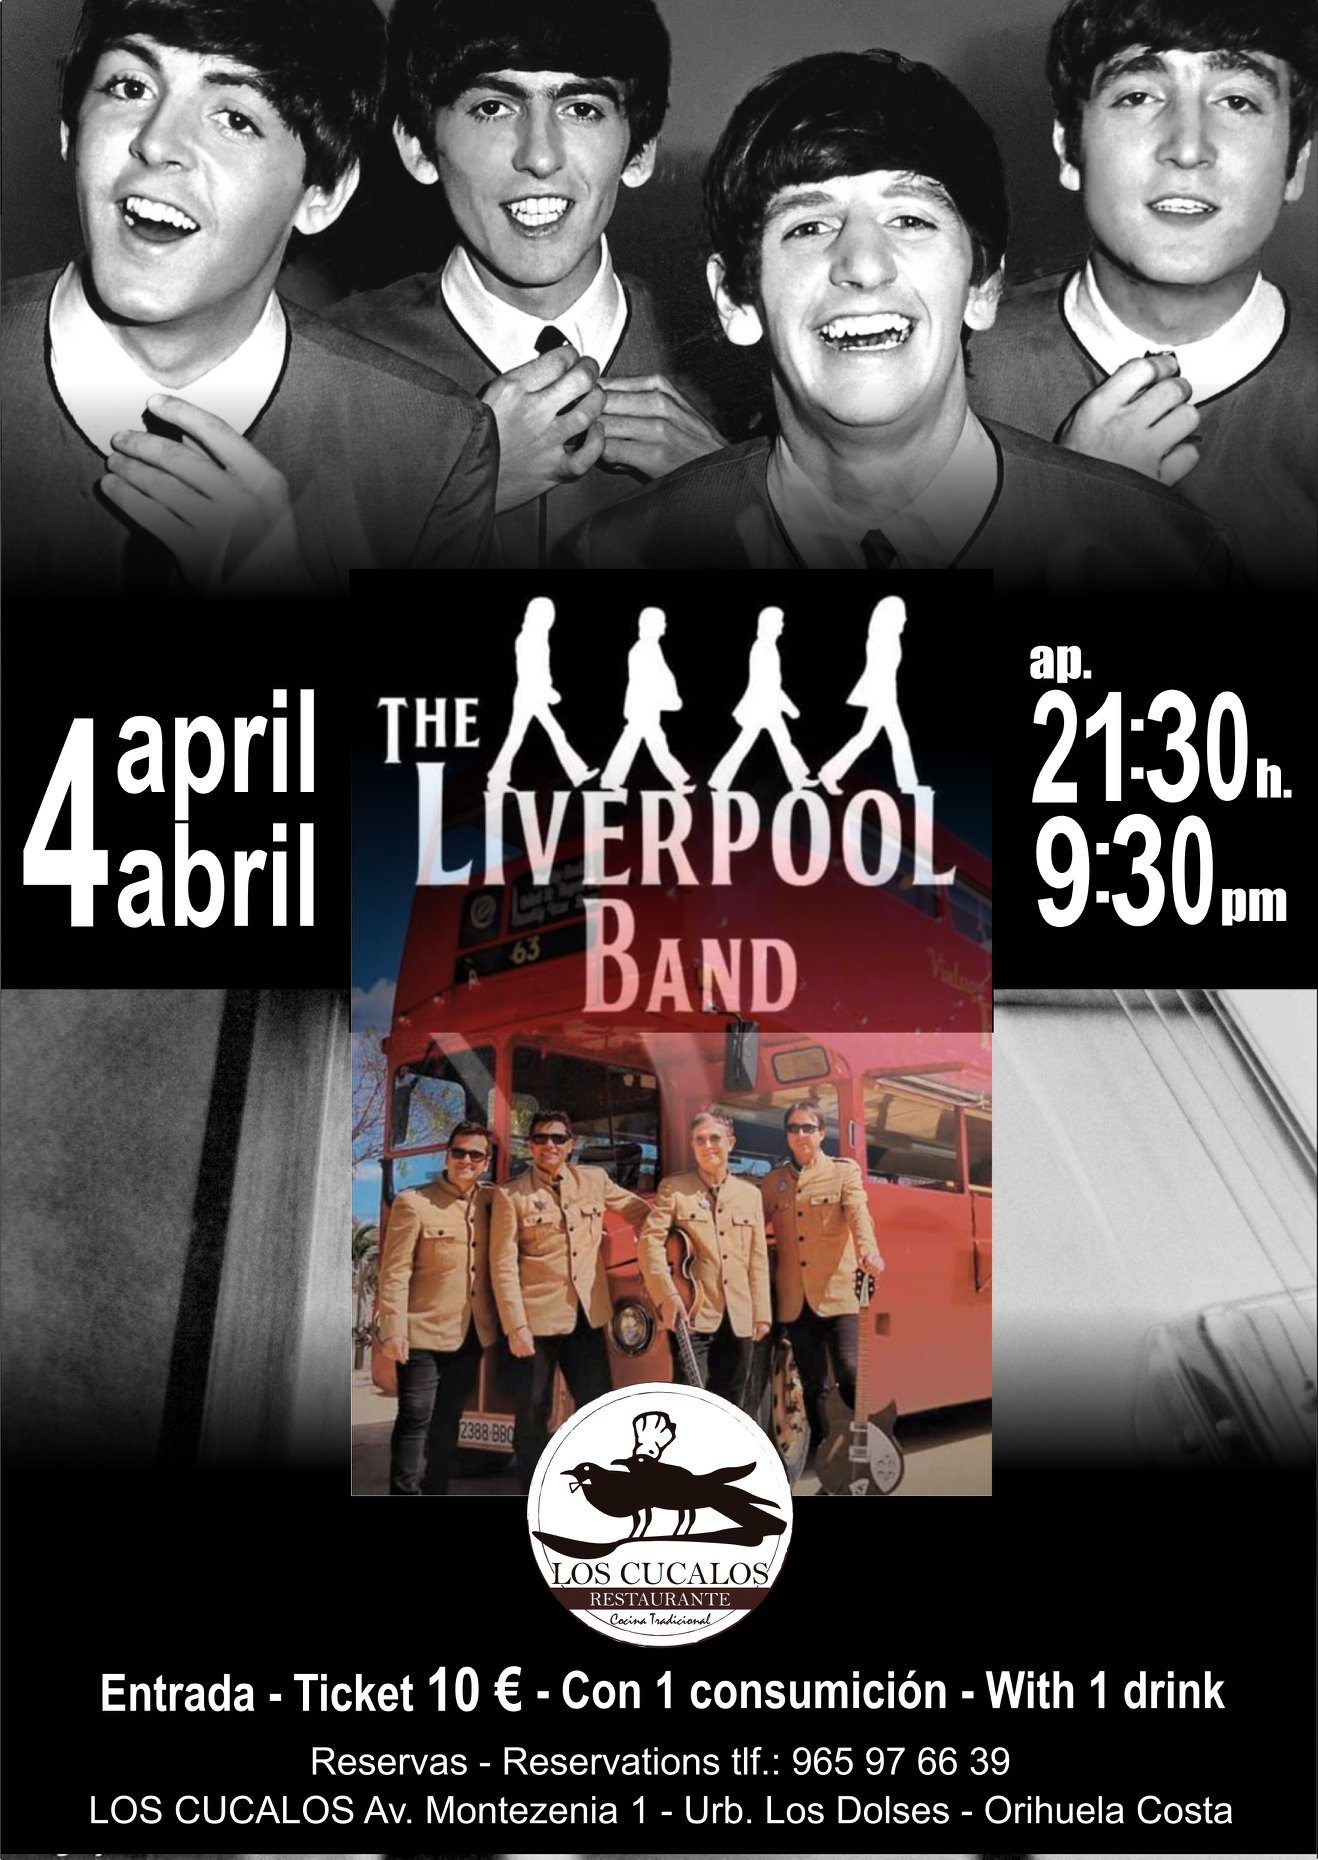 the liverpool band in los cucalos april 2020 torreviejacom 2